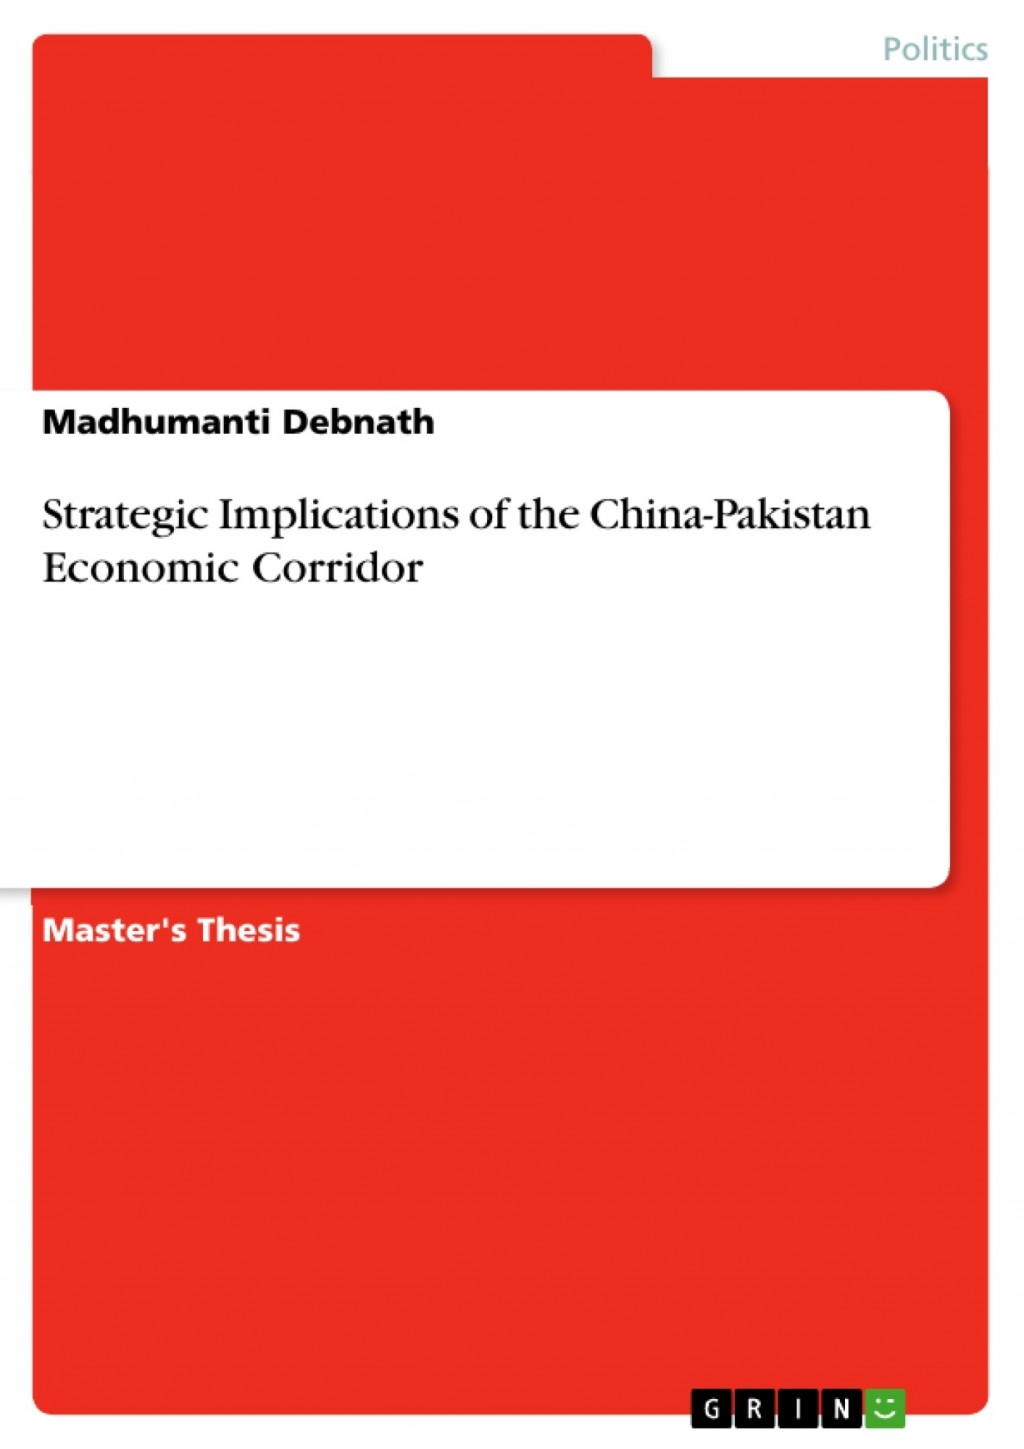 010 Chinese Economy Research Paper Topics 375337 0 Awful Large